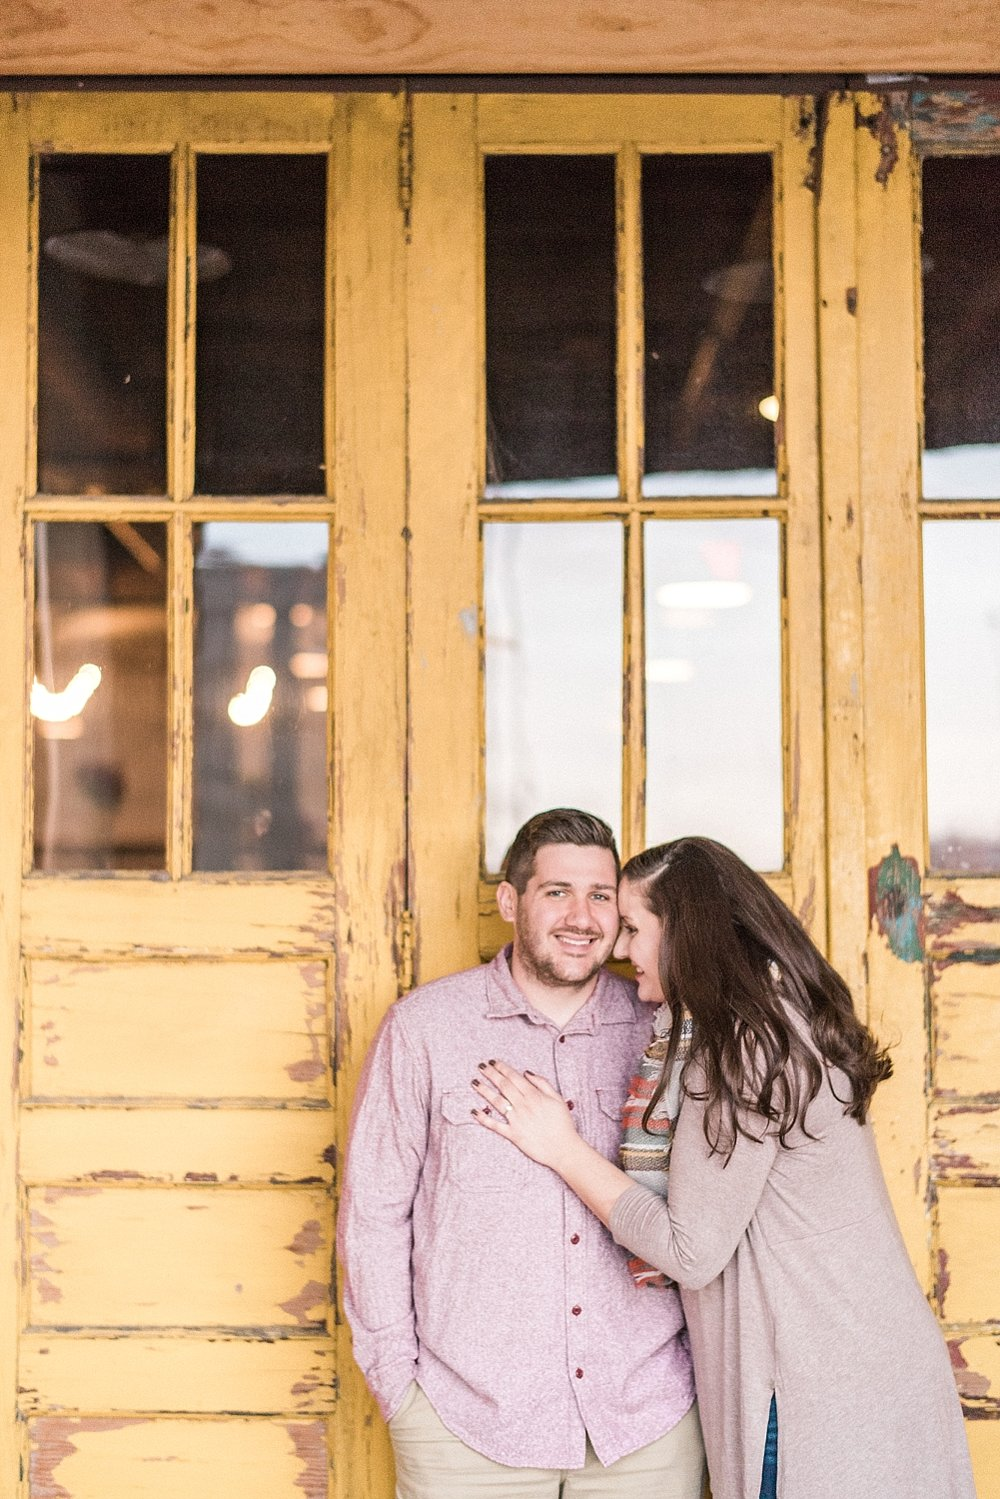 Top places to do engagements in downtown Knoxville | Juicebeats Photography | Knoxville Wedding Photographer | The Standard Knoxville